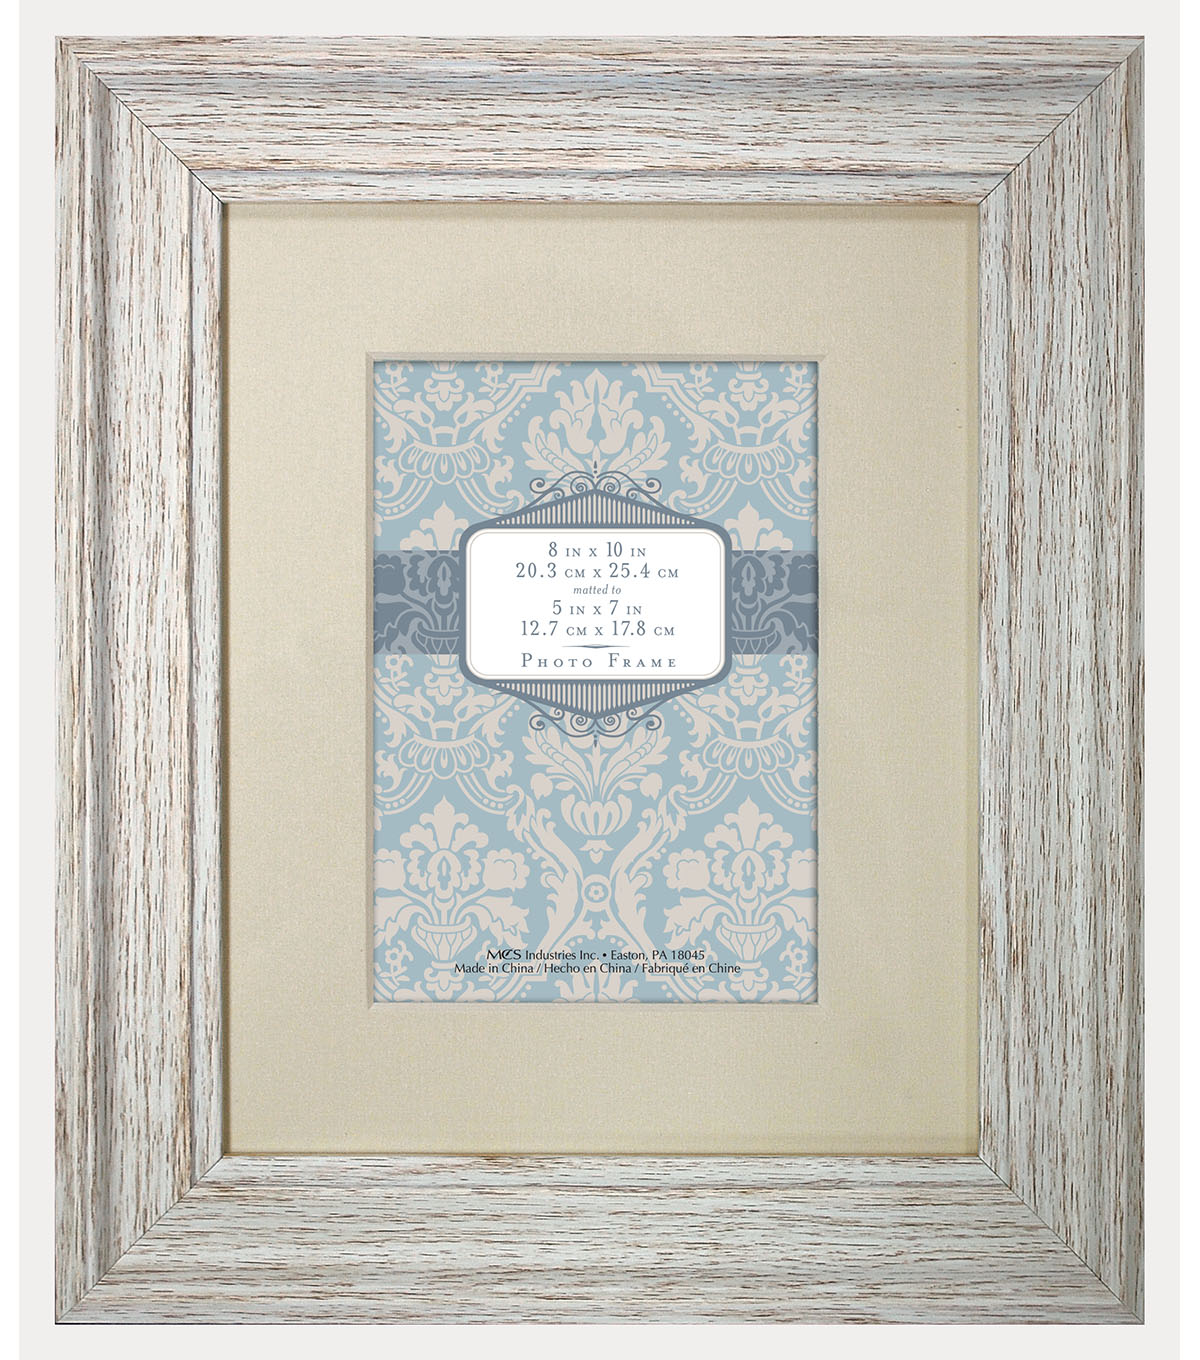 Tabletop Frame 8X10 To 5X7-Distressed Cream